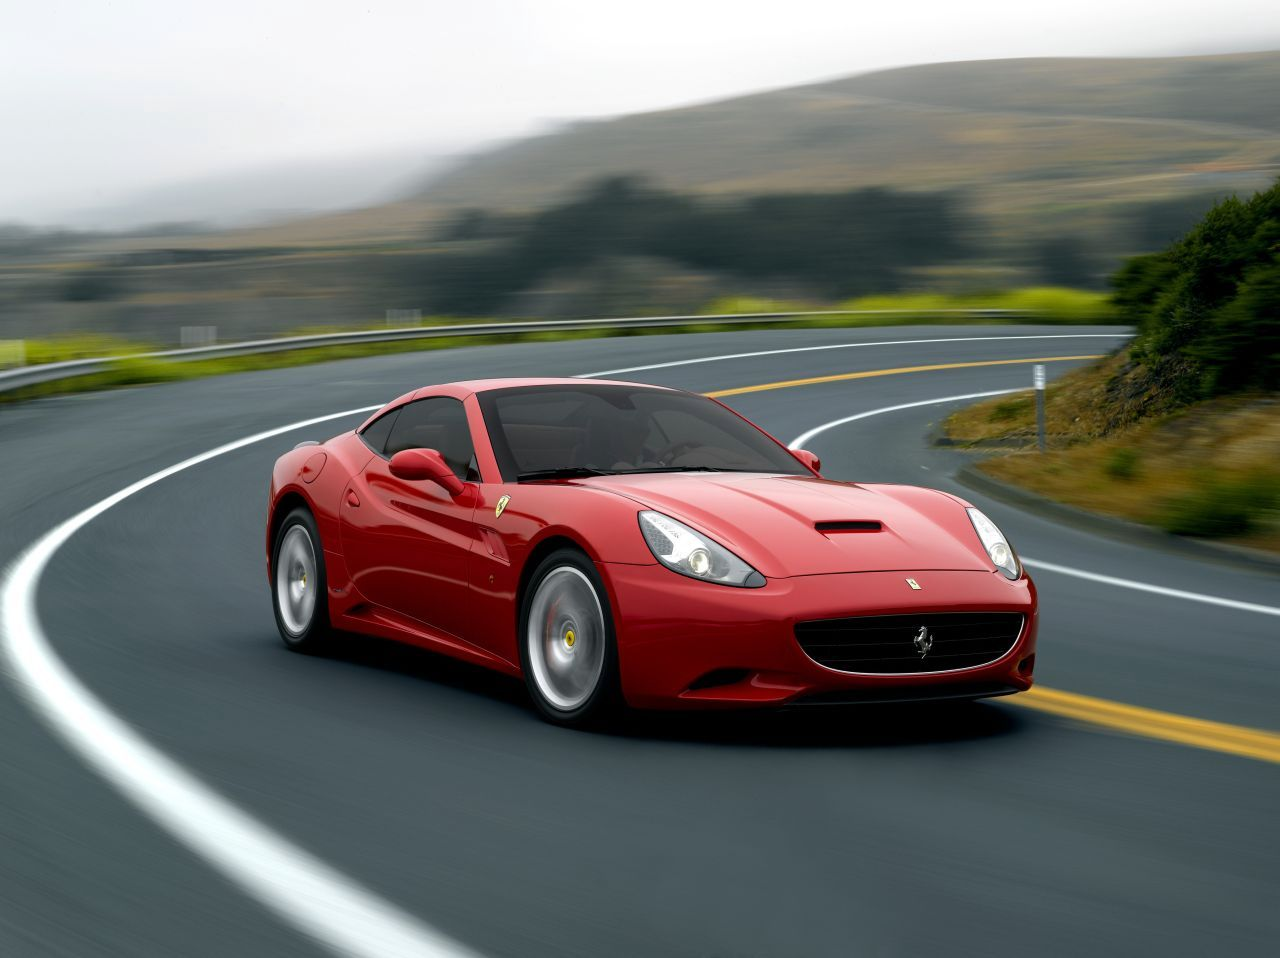 Cool Sports Cars Ferrari: Ferrari Sports Cars Wallpaper 40 Car Hd Wallpaper